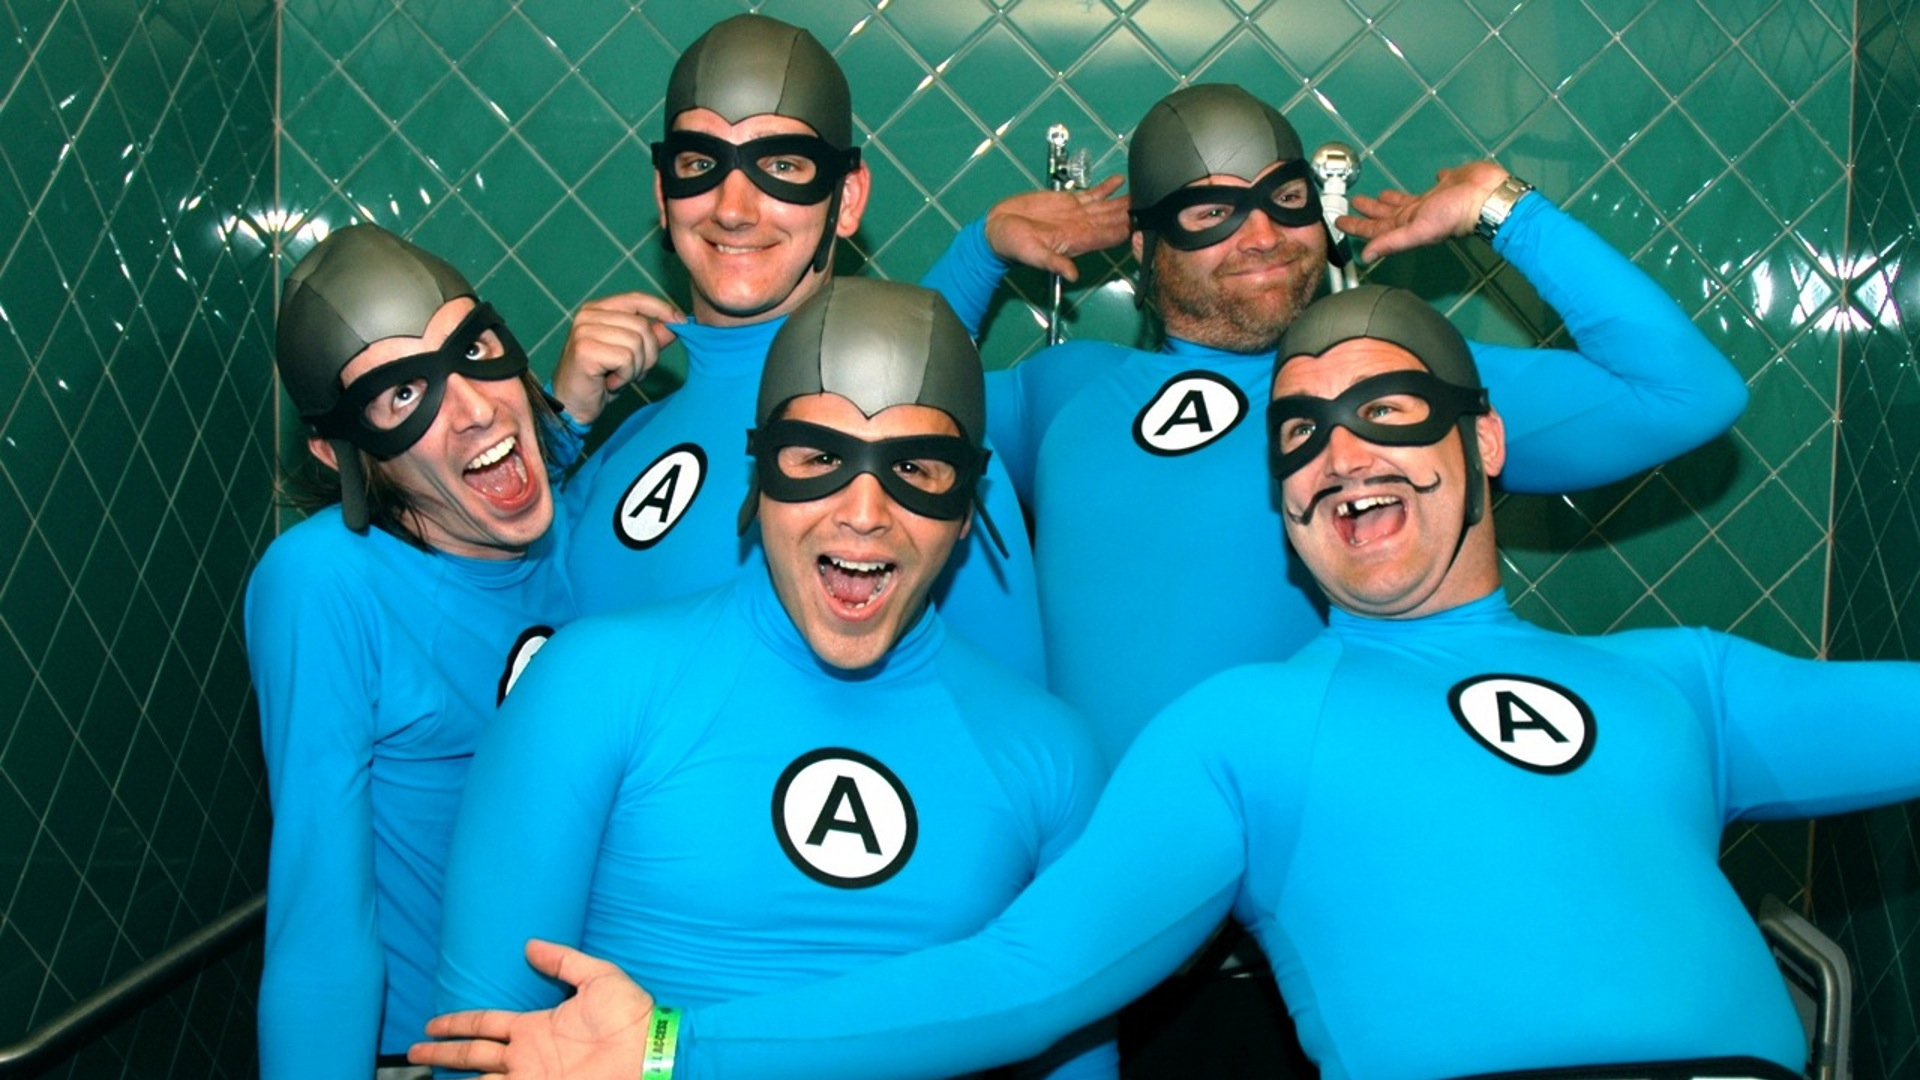 1920x1080 > The Aquabats Wallpapers